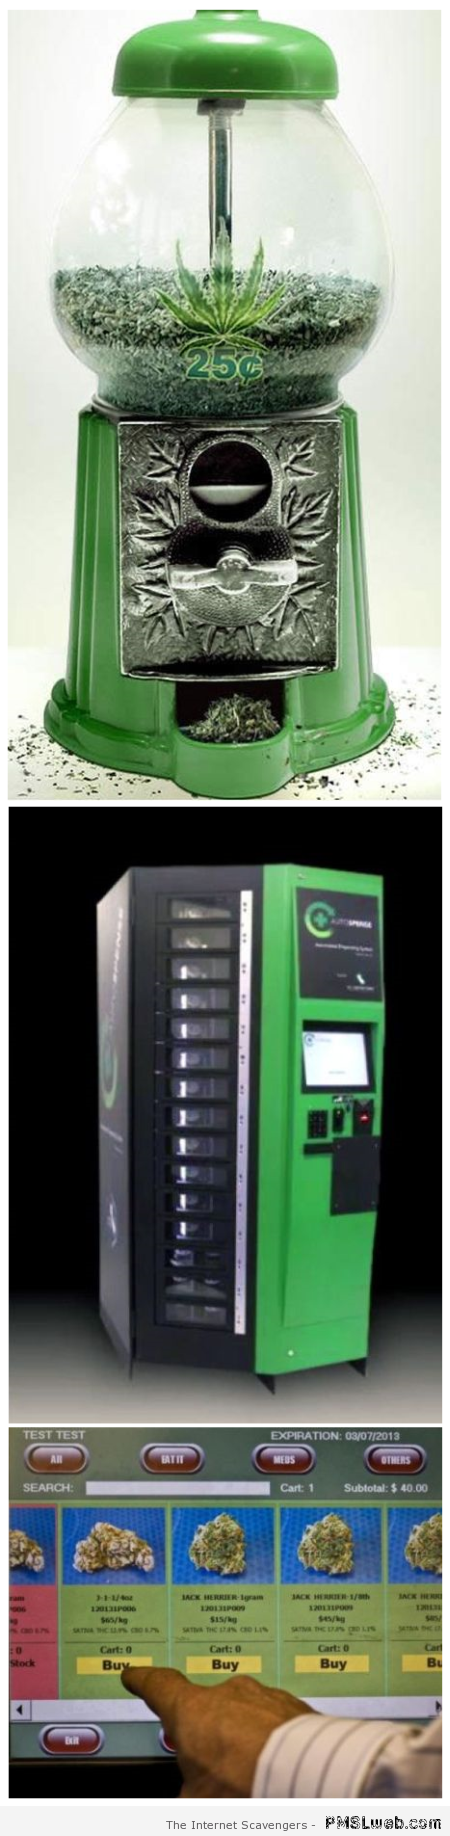 Marijuana vending machine at PMSLweb.com